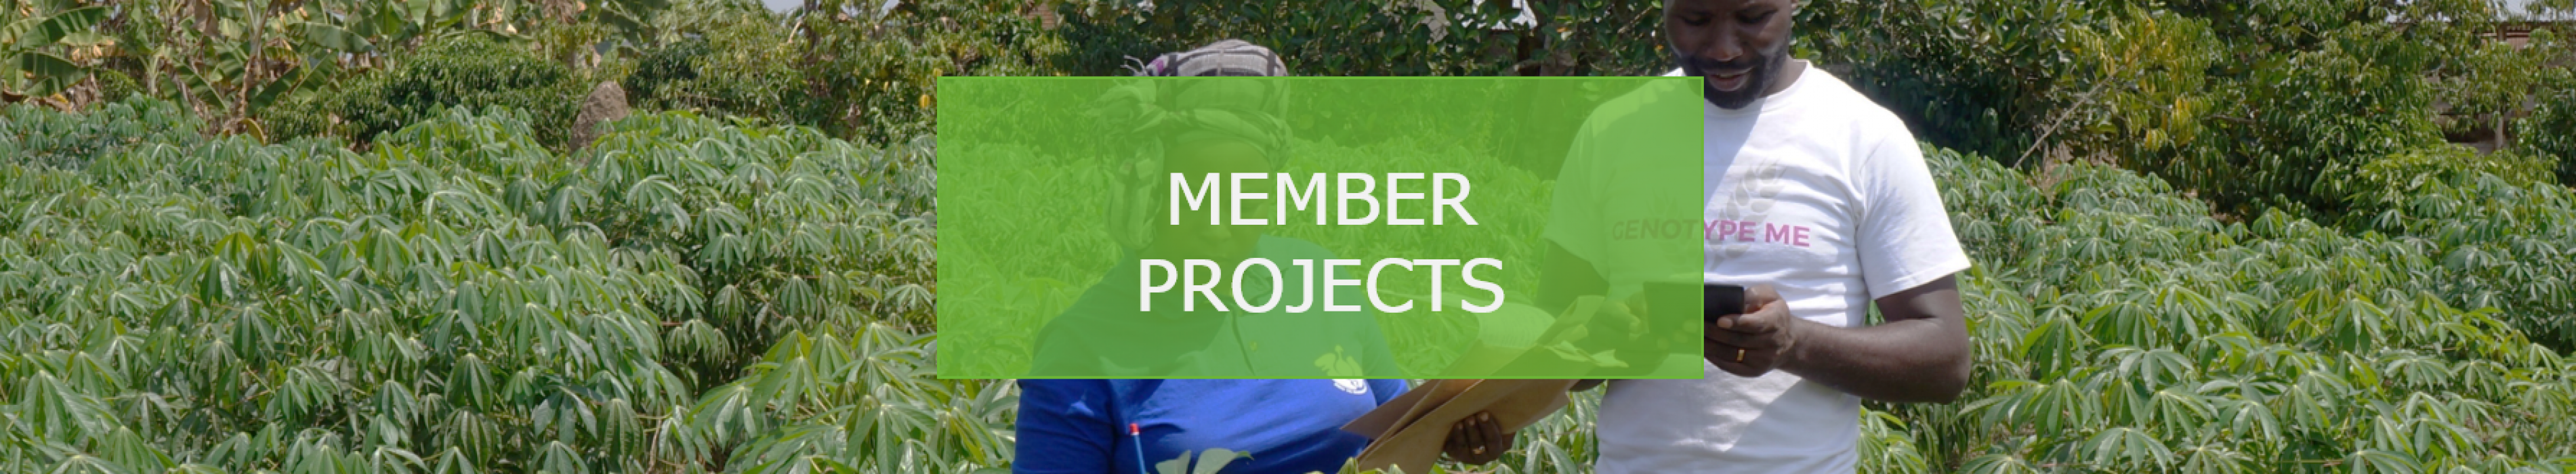 Member projects